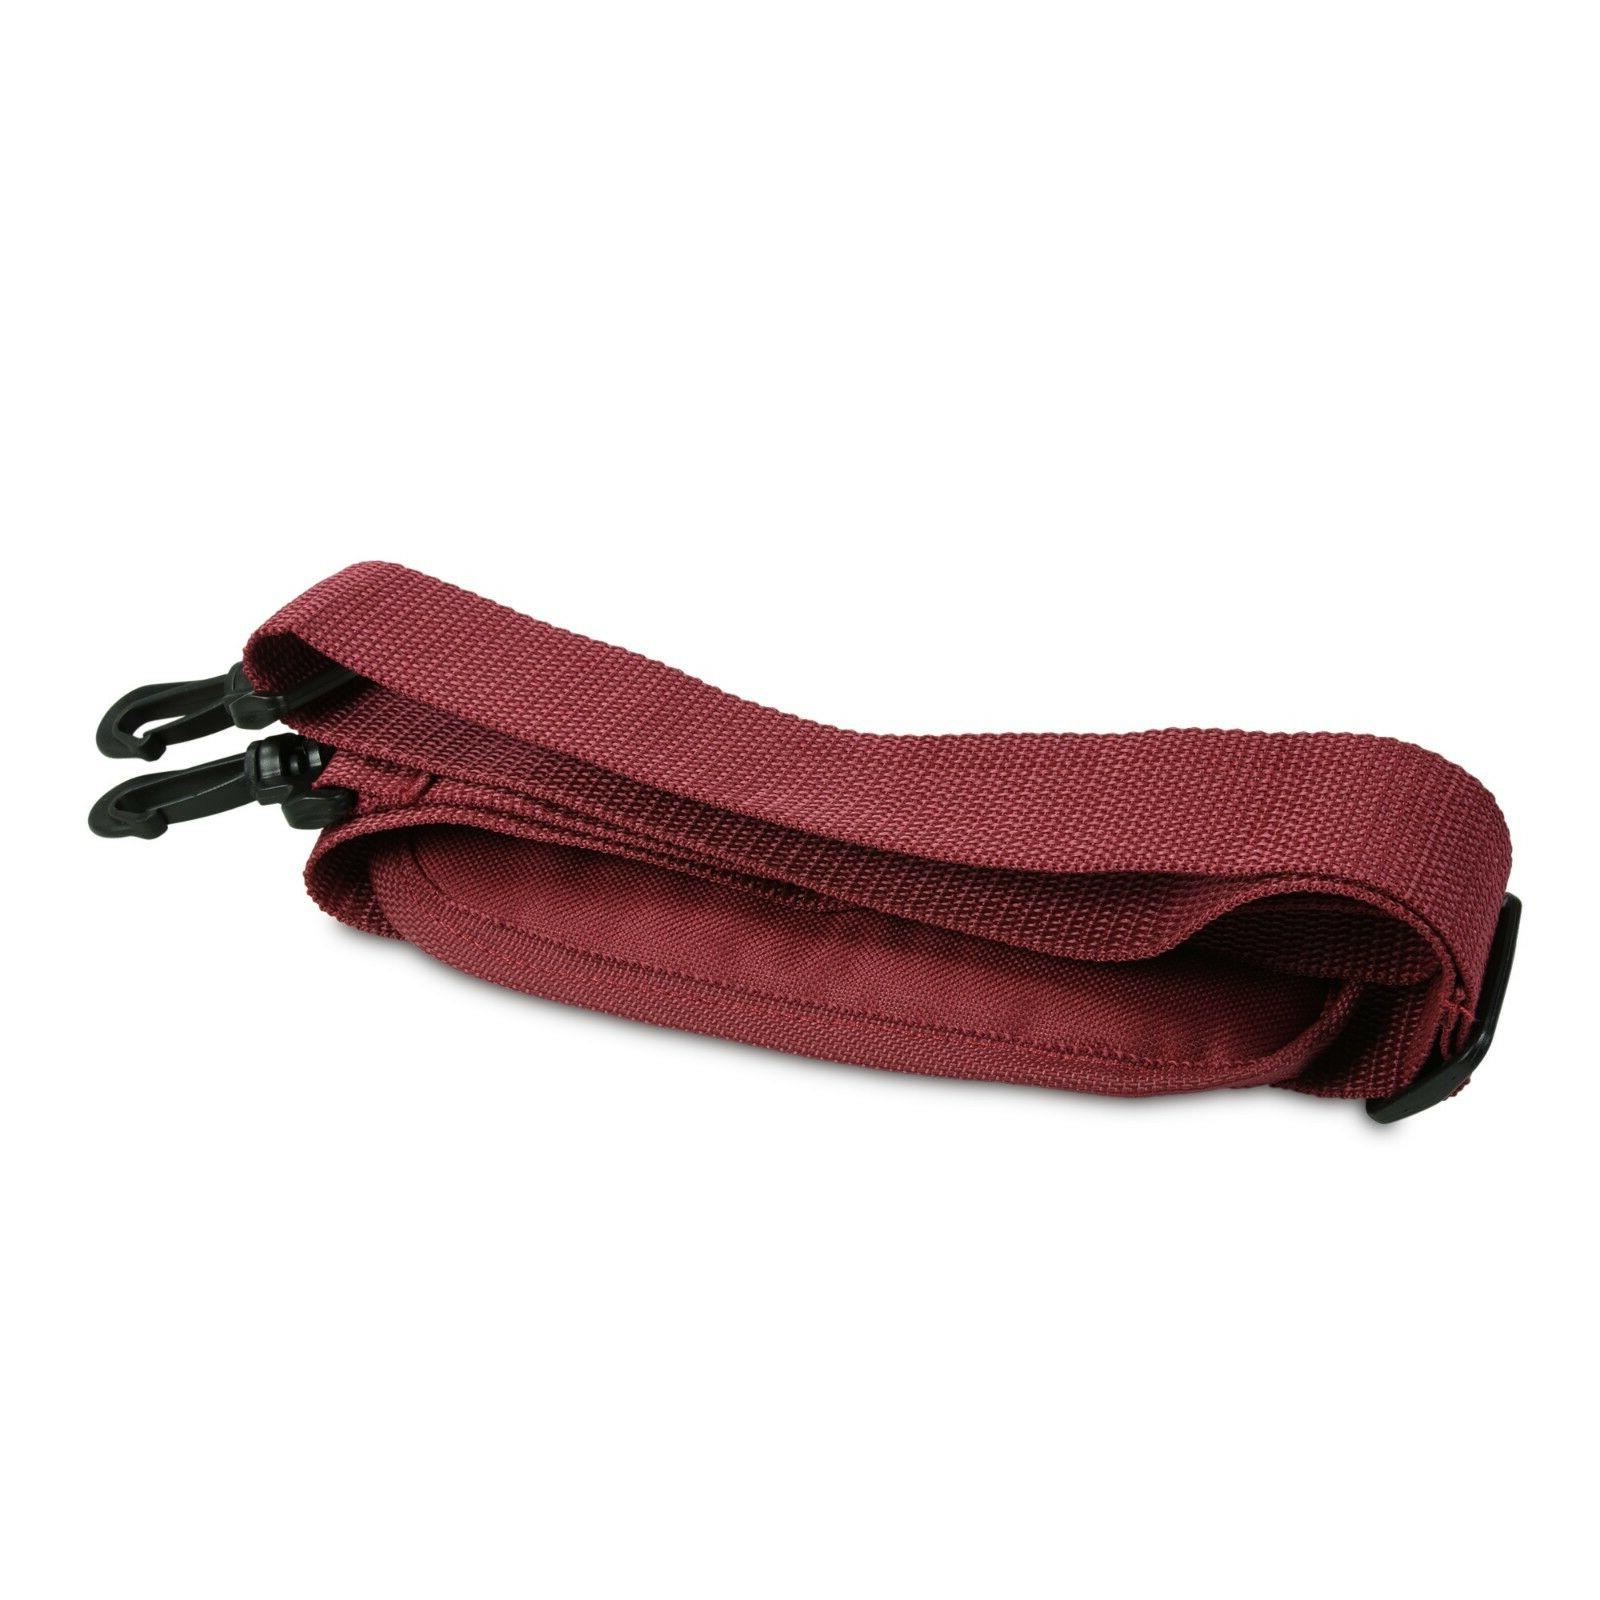 DALIX Premium Replacement Strap with Pad Travel Duffle